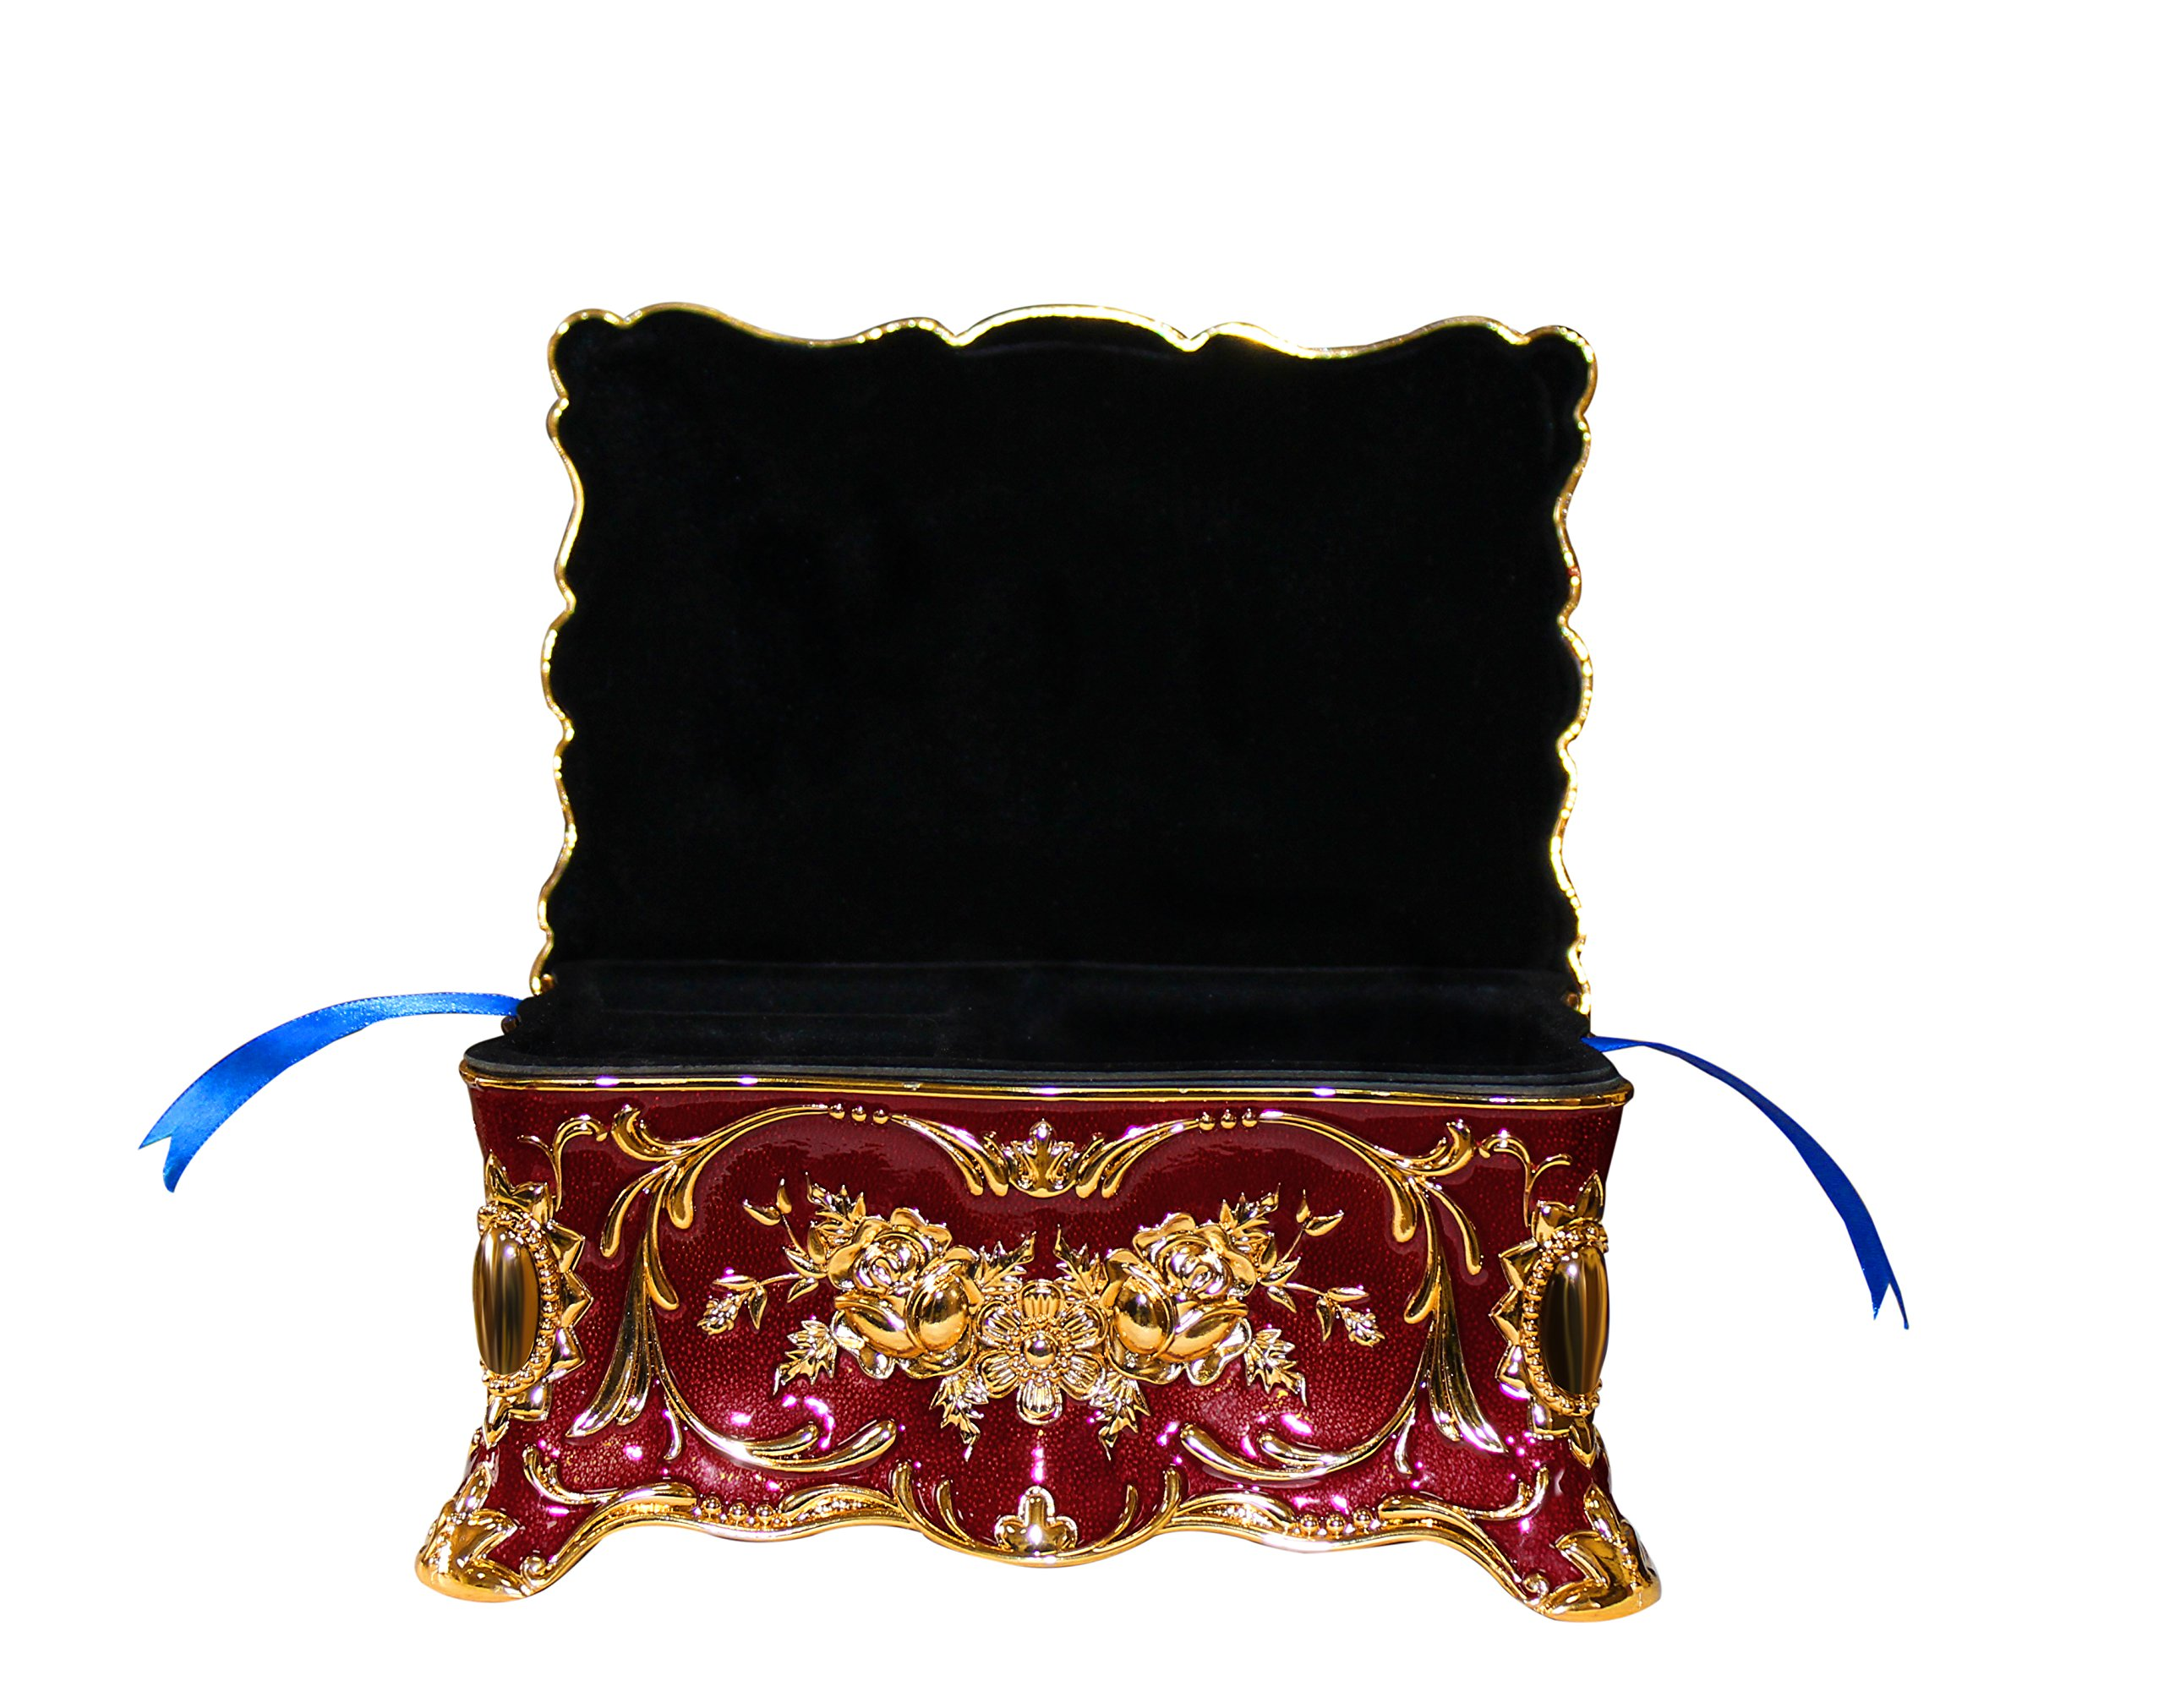 Goddess Area Vintage Jewelry Box with Ornate Antique Finish Rectangular Trinket (Red) by Goddess Area (Image #6)